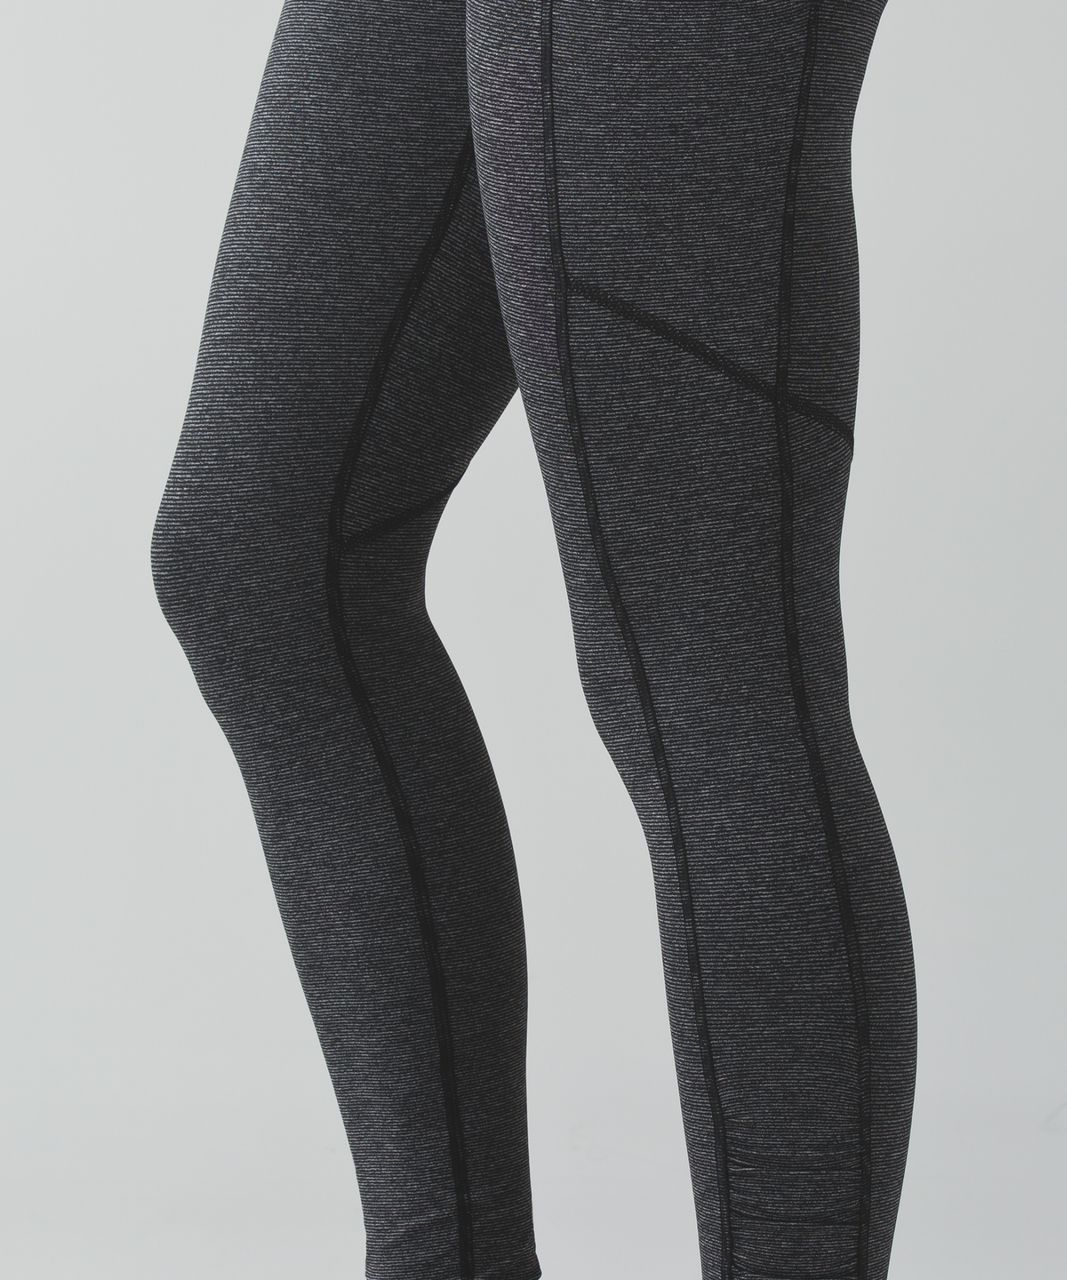 Lululemon Speed Tight IV - Wee Stripe Black Heathered Black / Black / Heathered Black